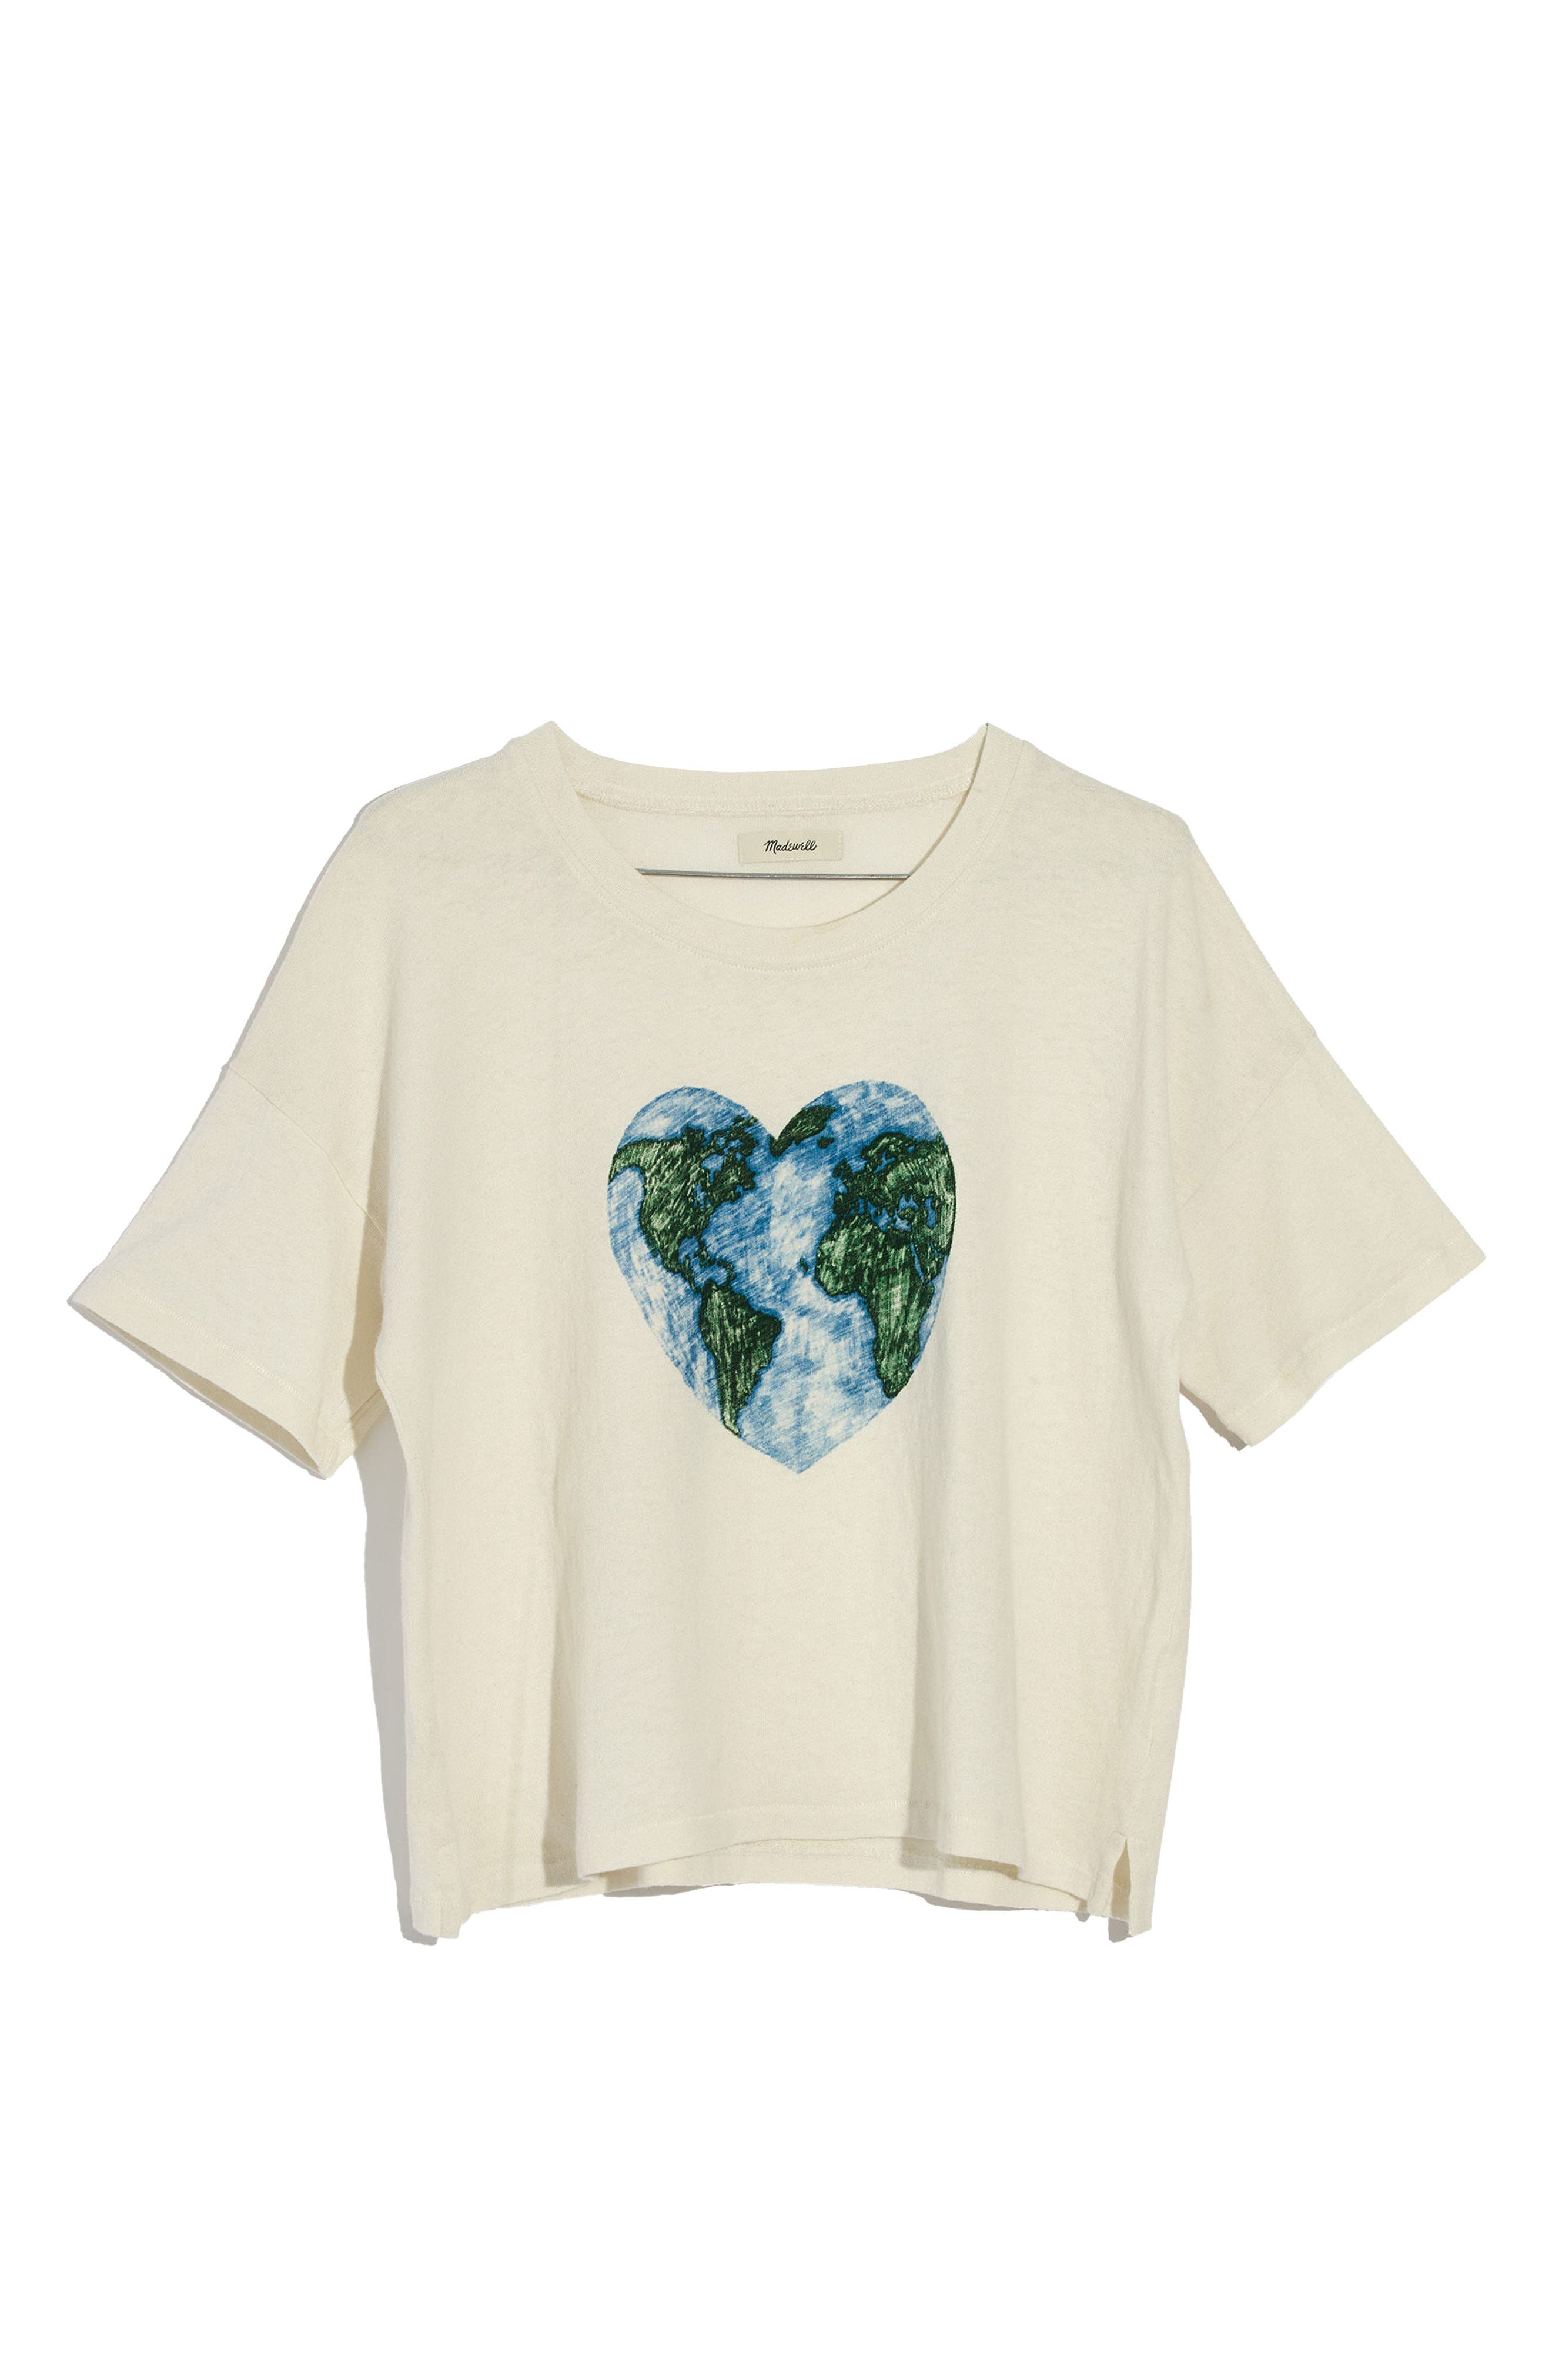 x Surfrider Foundation Mother Earth Tee,                             Alternate thumbnail 3, color,                             100